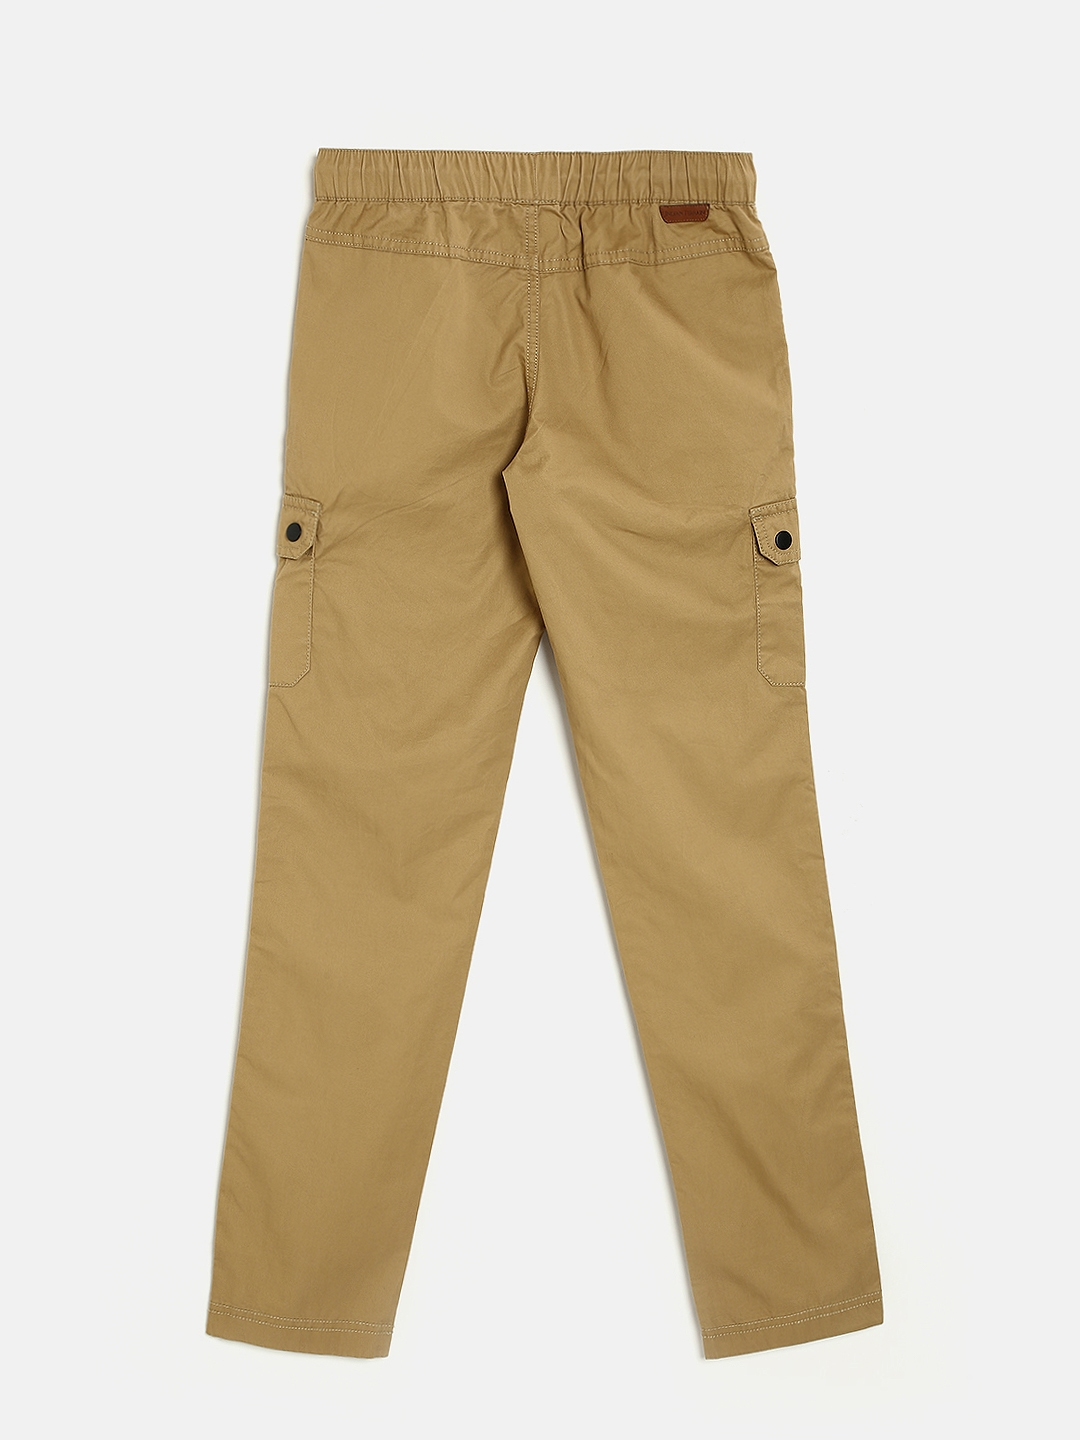 2718751c29 Buy Indian Terrain Boys Brown Regular Fit Solid Cargo Trousers ...